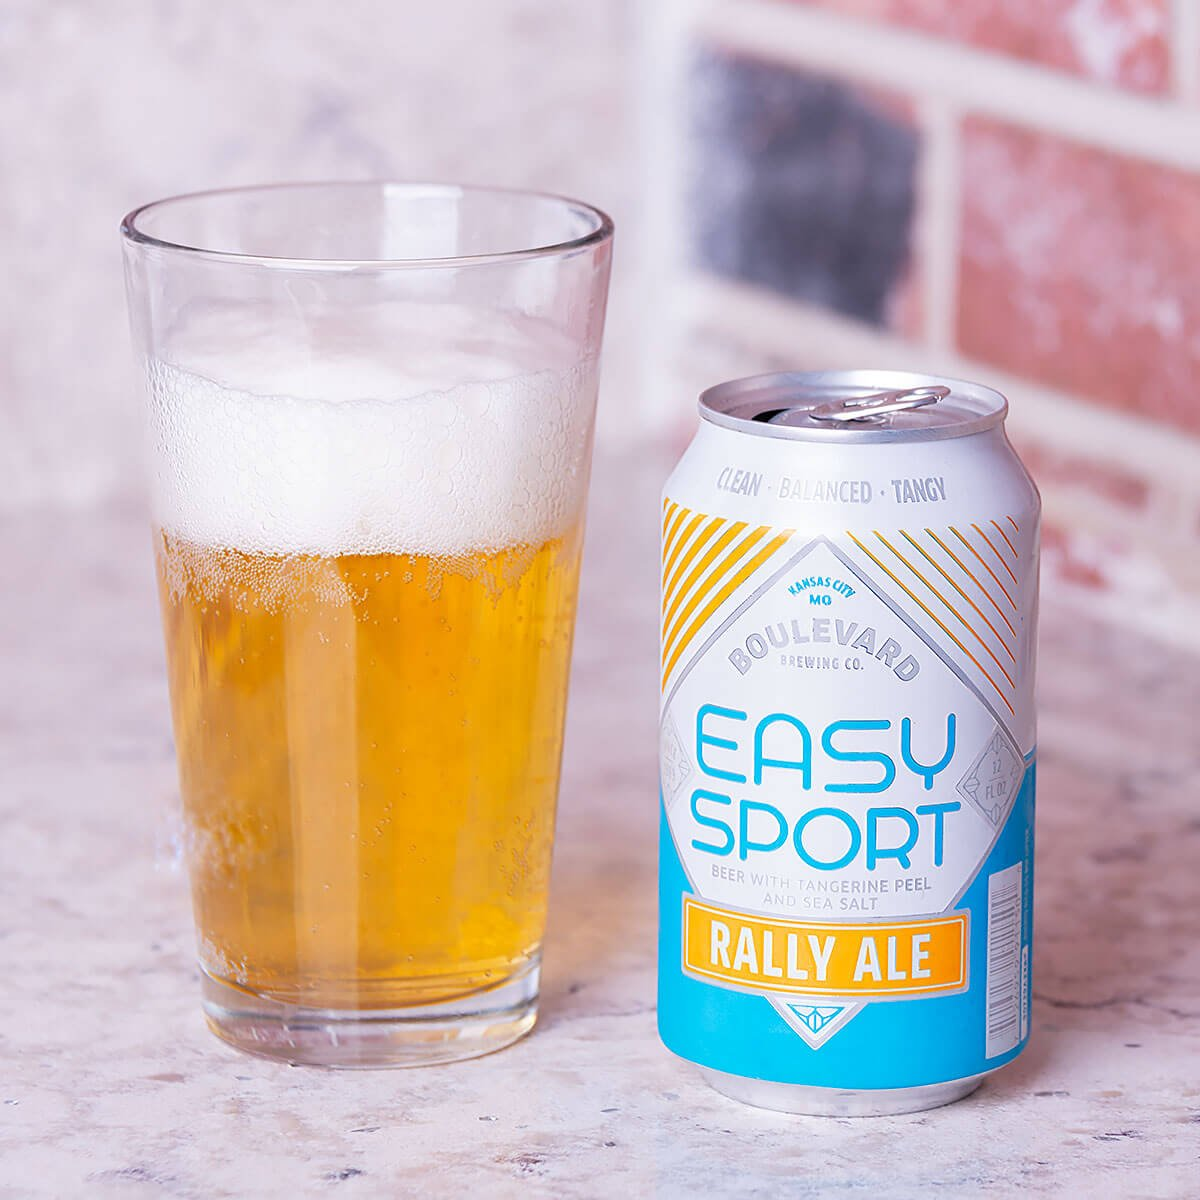 Easy Sport is an American Blonde Ale by Boulevard Brewing Co. that blends honey malt flavor and citrus in a lo-cal, lo-carb package.